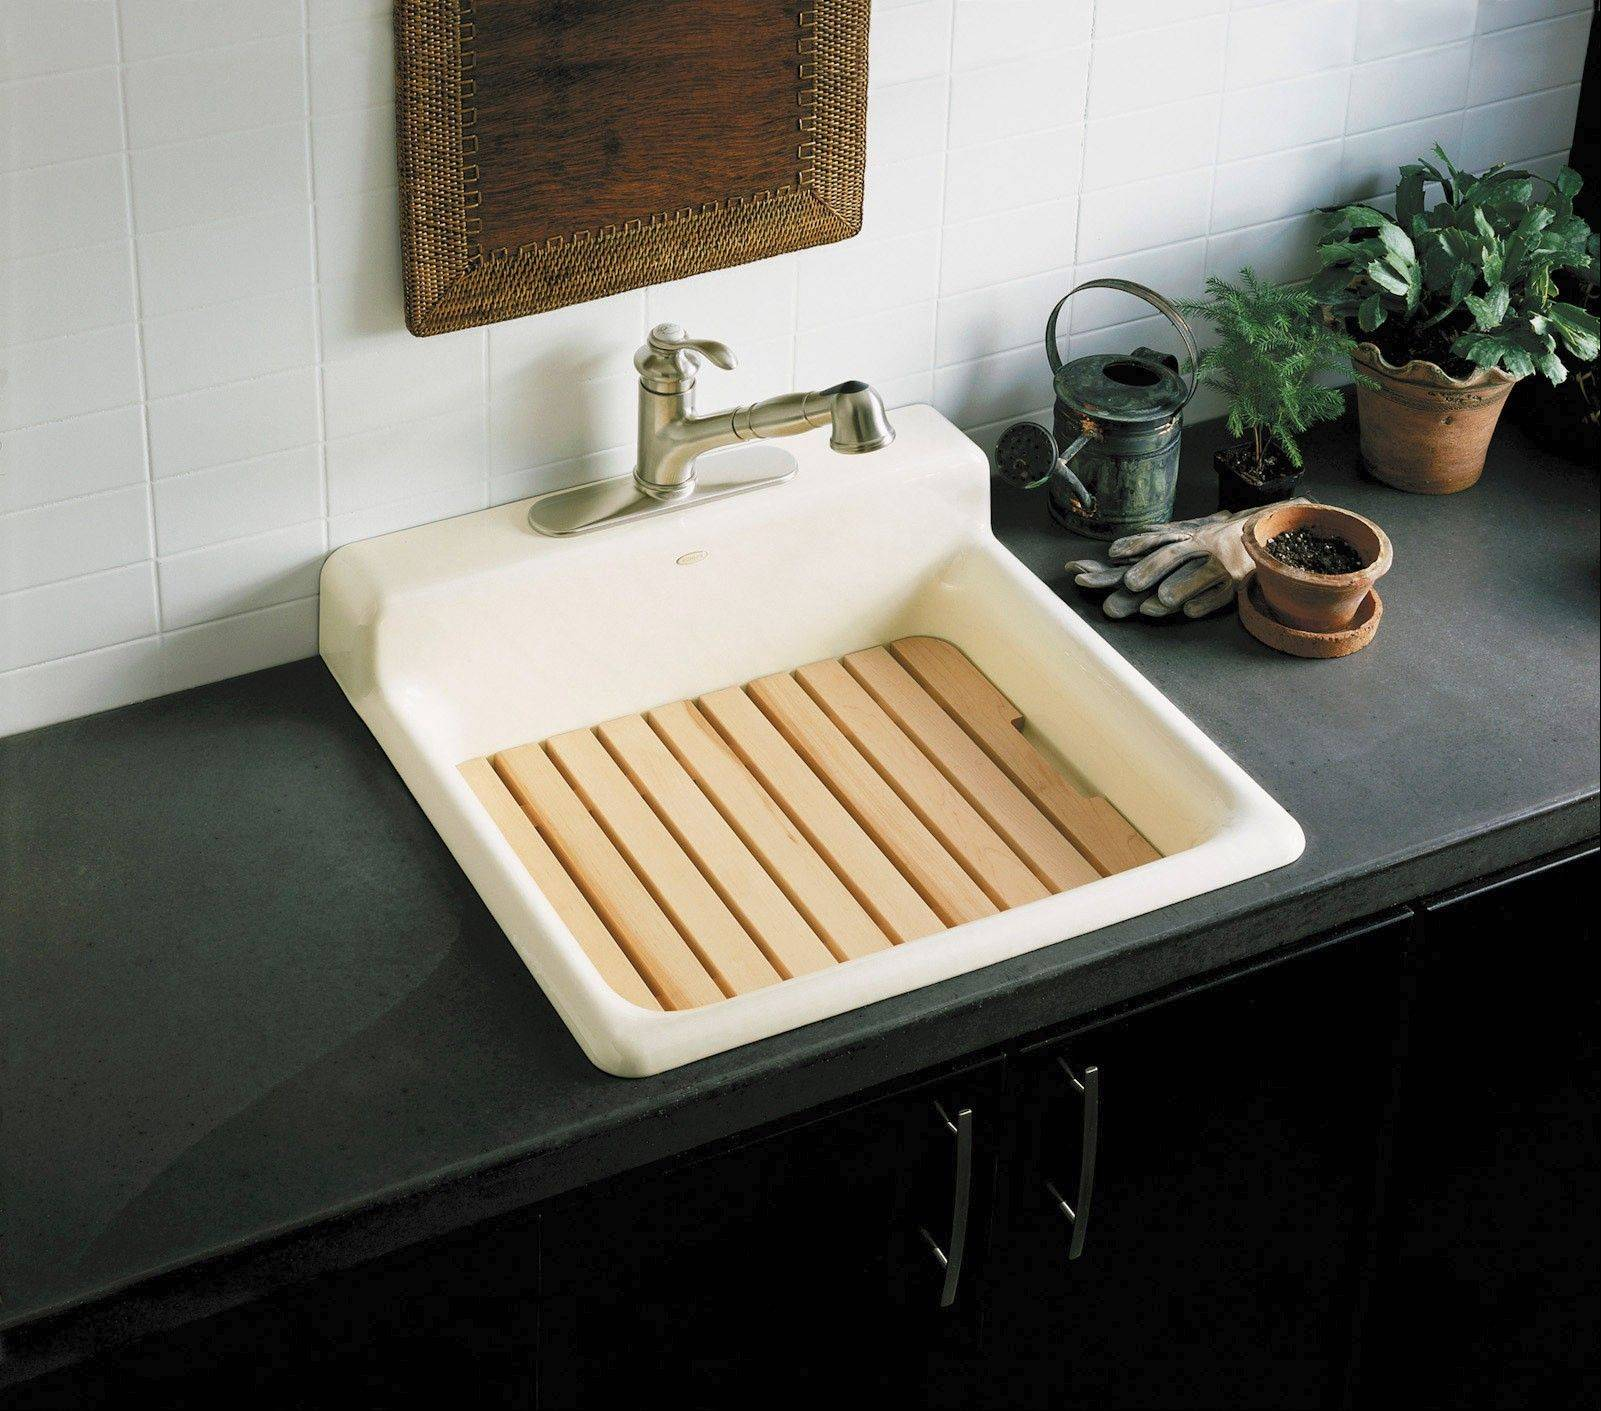 In today's plumbing market, you have great choices for laundry sinks.